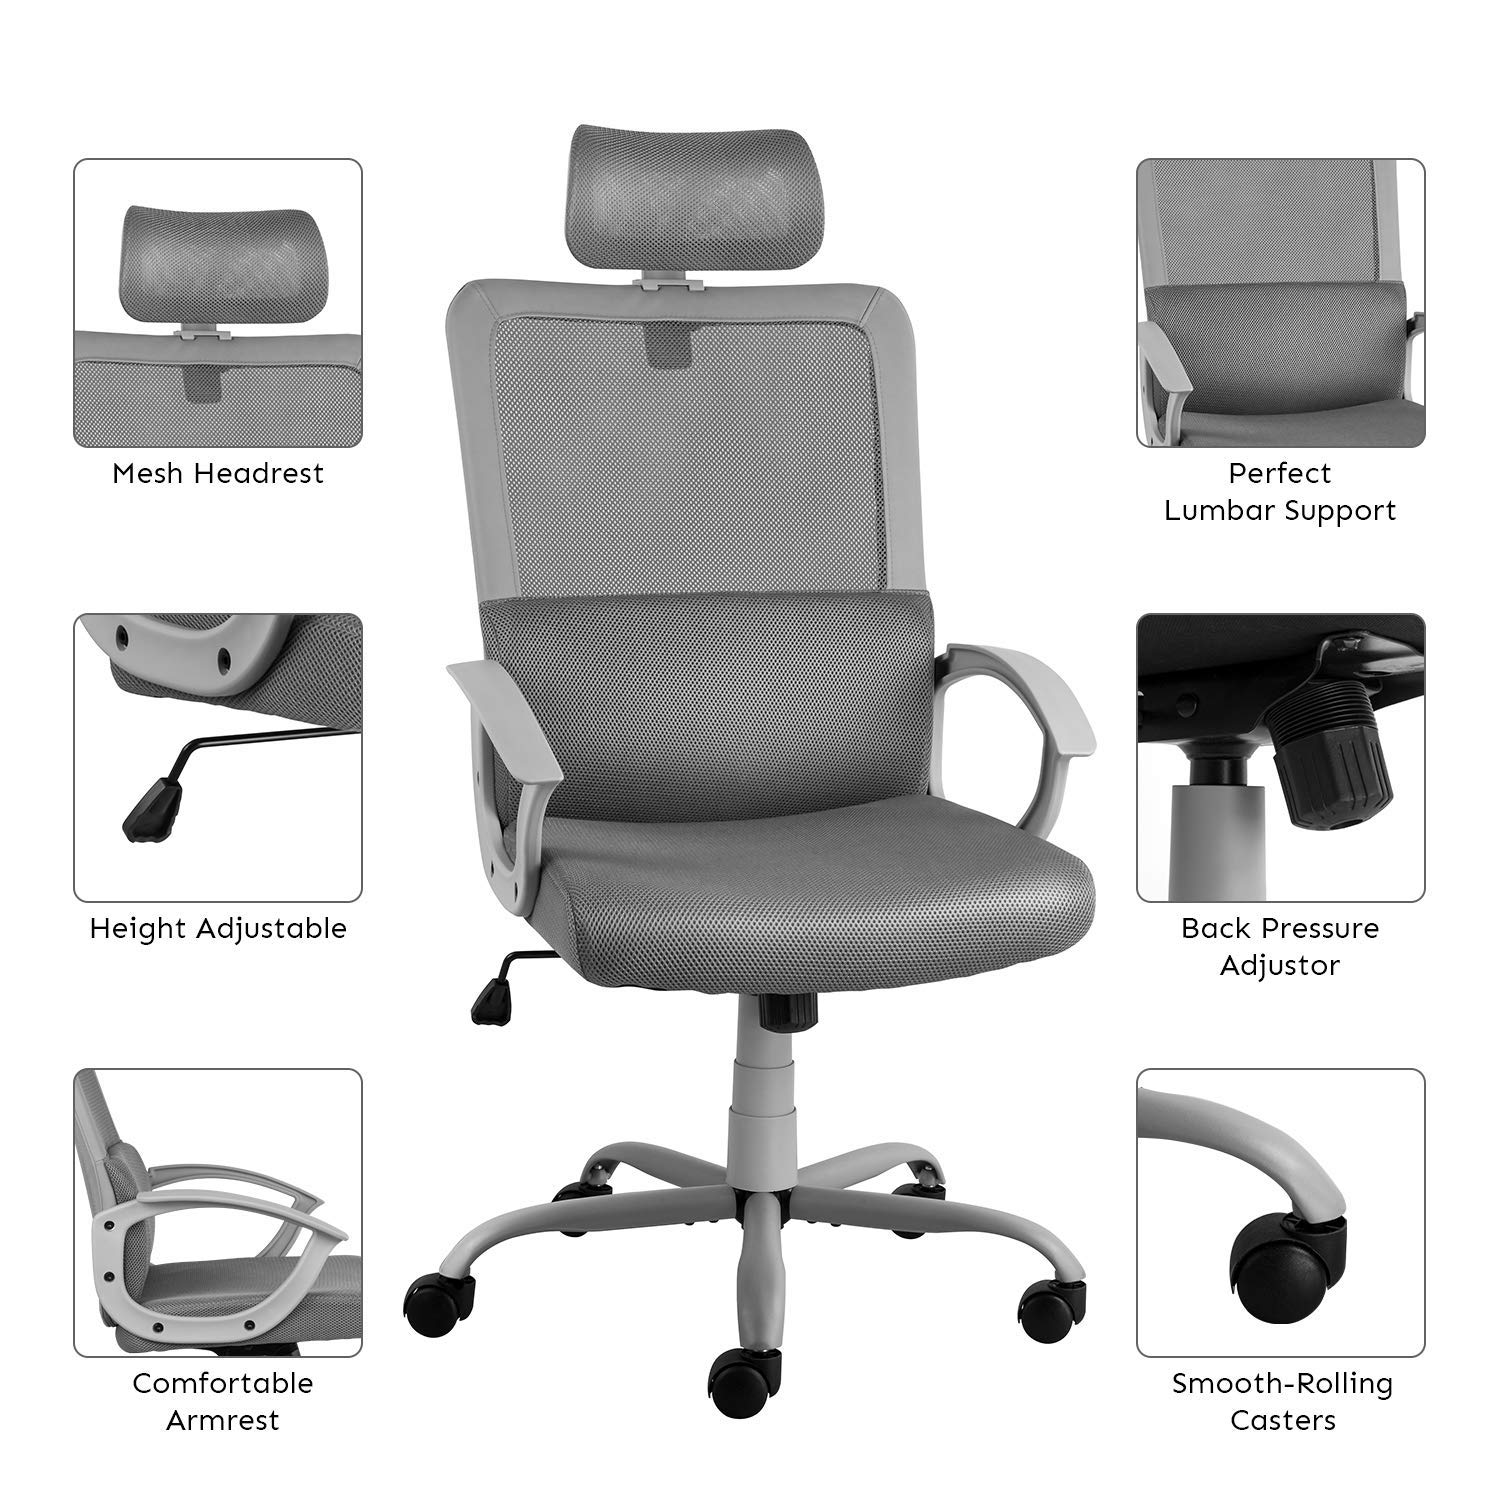 Smugdesk Ergonomic Office Chair High Back Mesh Office Chair Adjustable Headrest Computer Desk Chair for Lumbar Support, Grey by Smugdesk (Image #2)